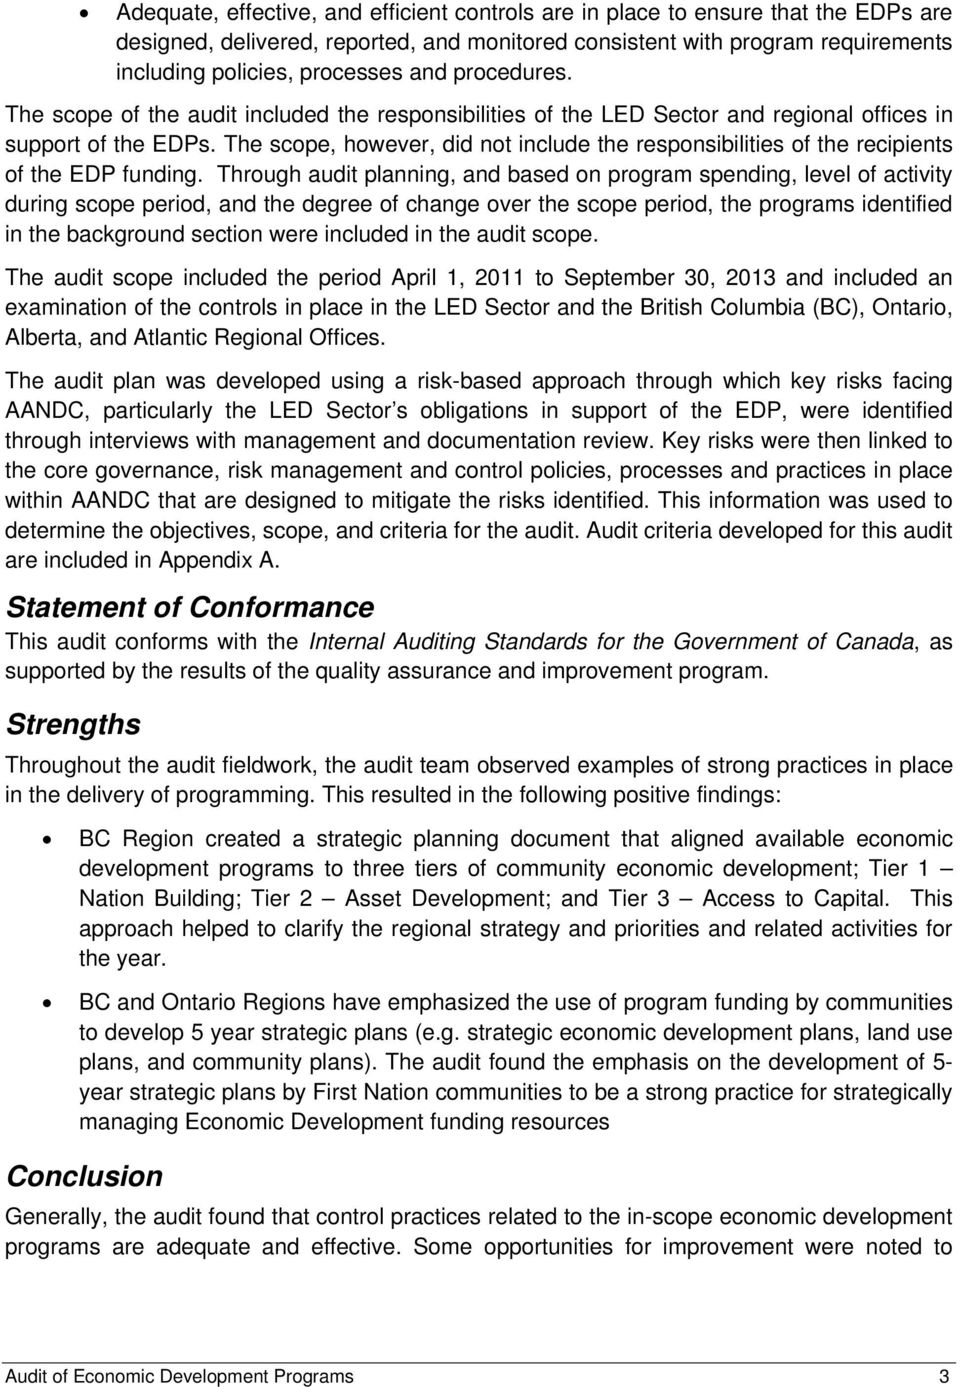 Aboriginal Affairs and Northern Development Canada  Internal Audit